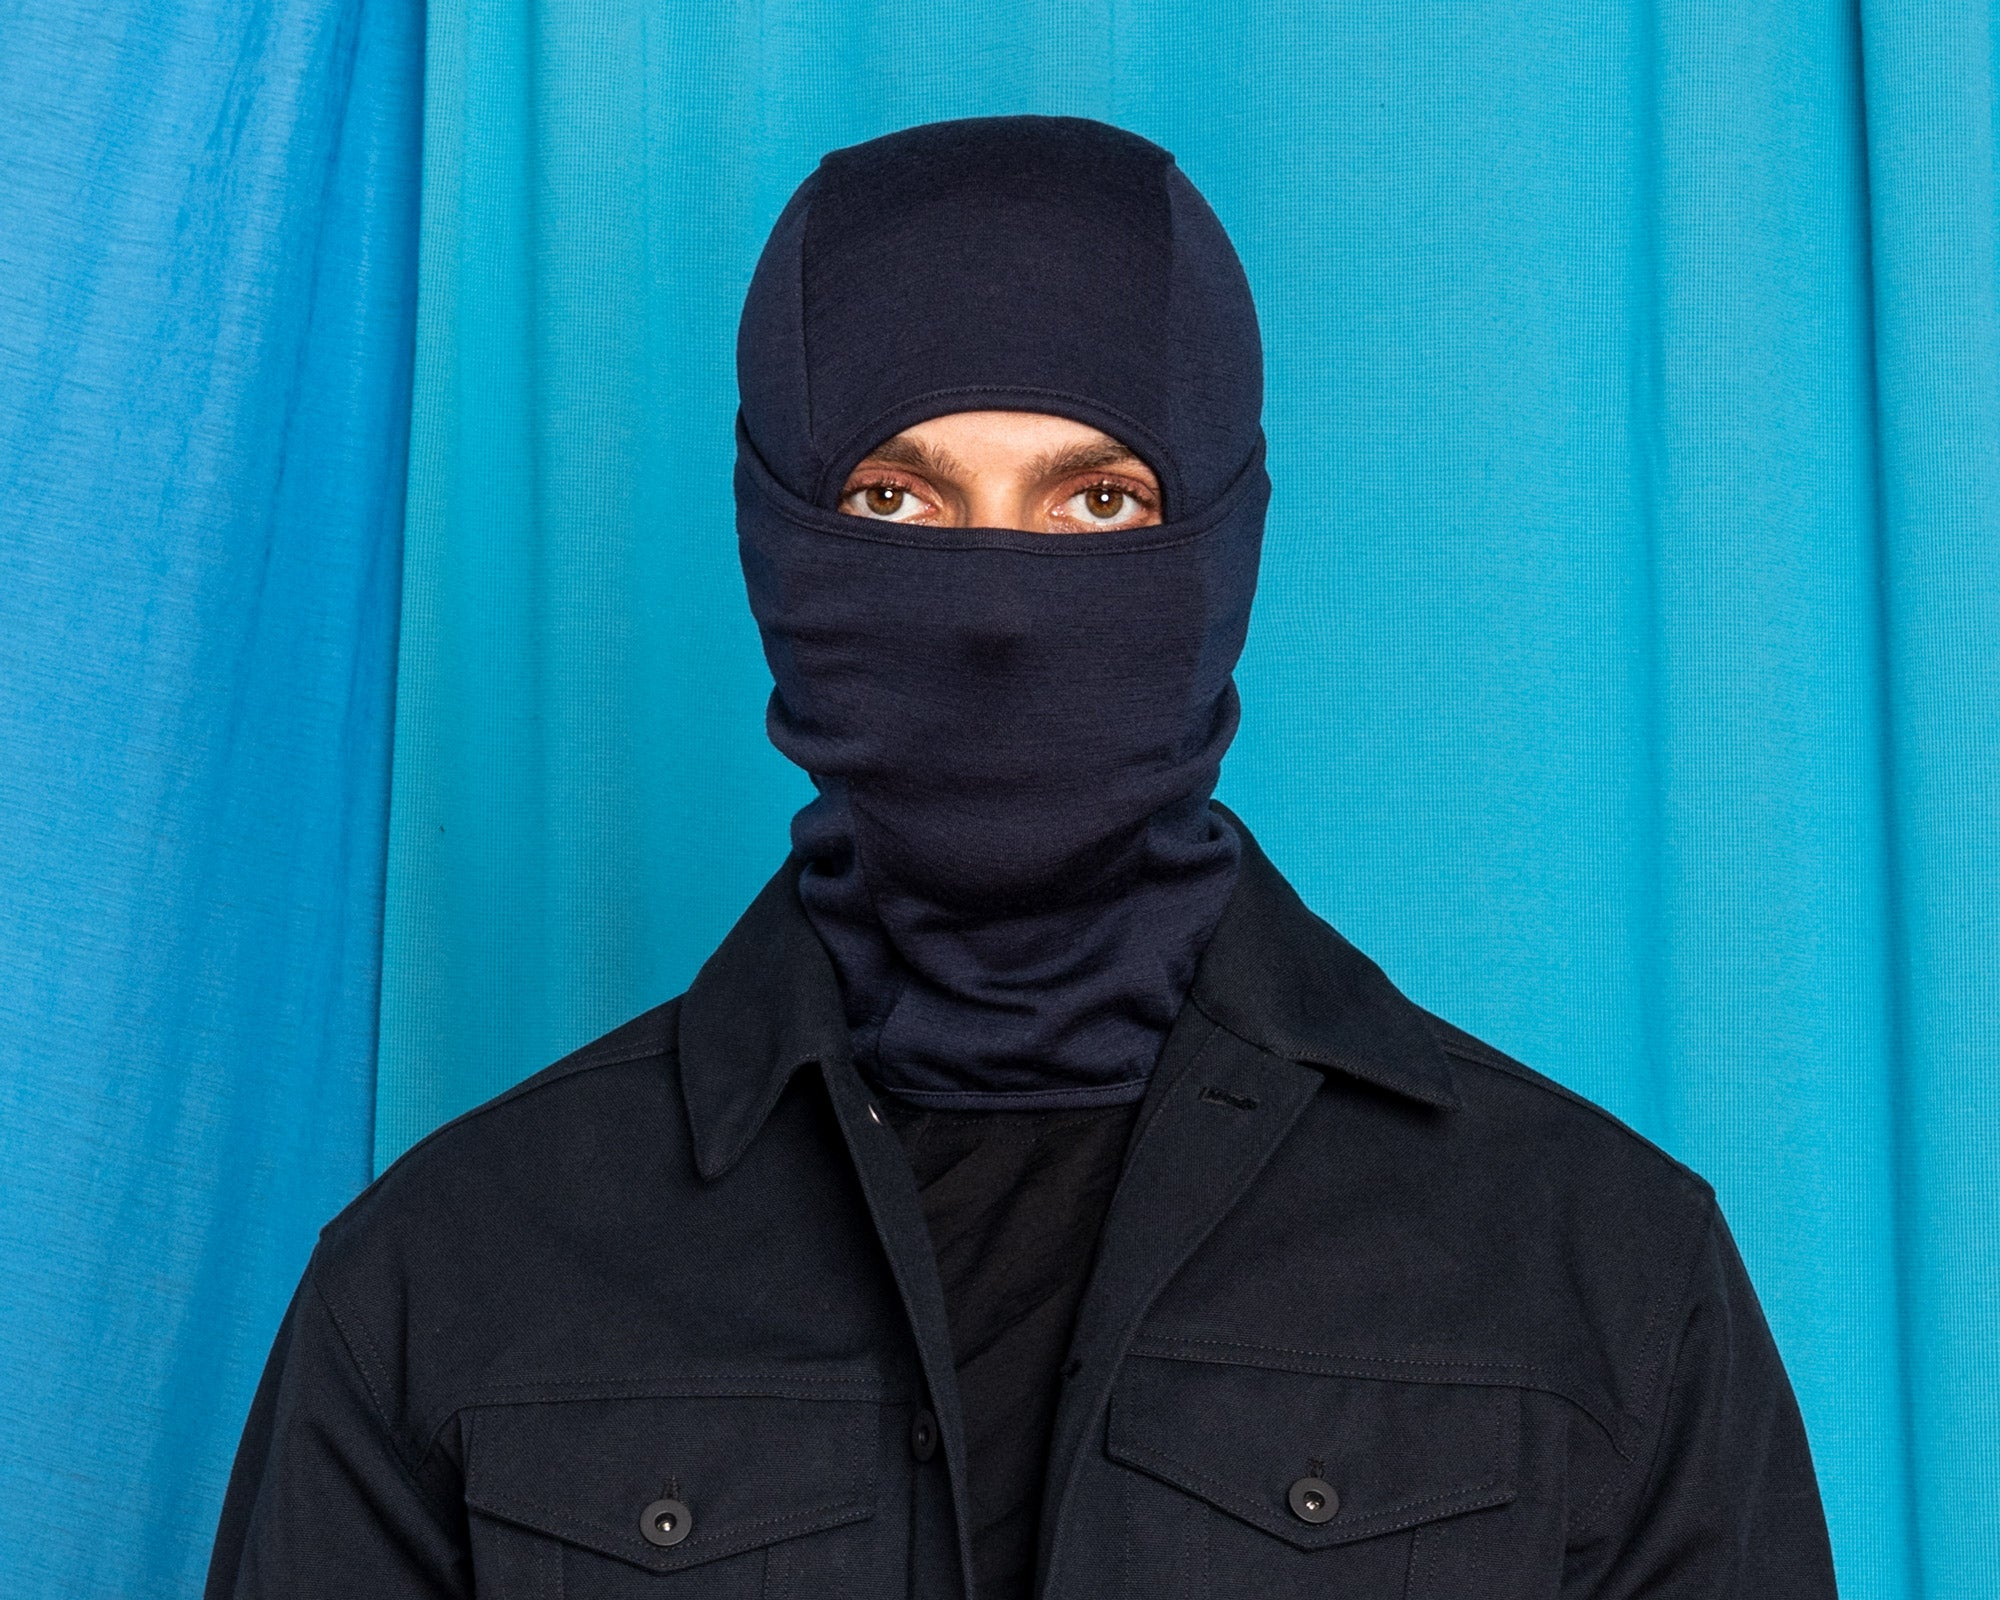 Daniele wearing the Doublefine Merino Balaclava in Black Navy.